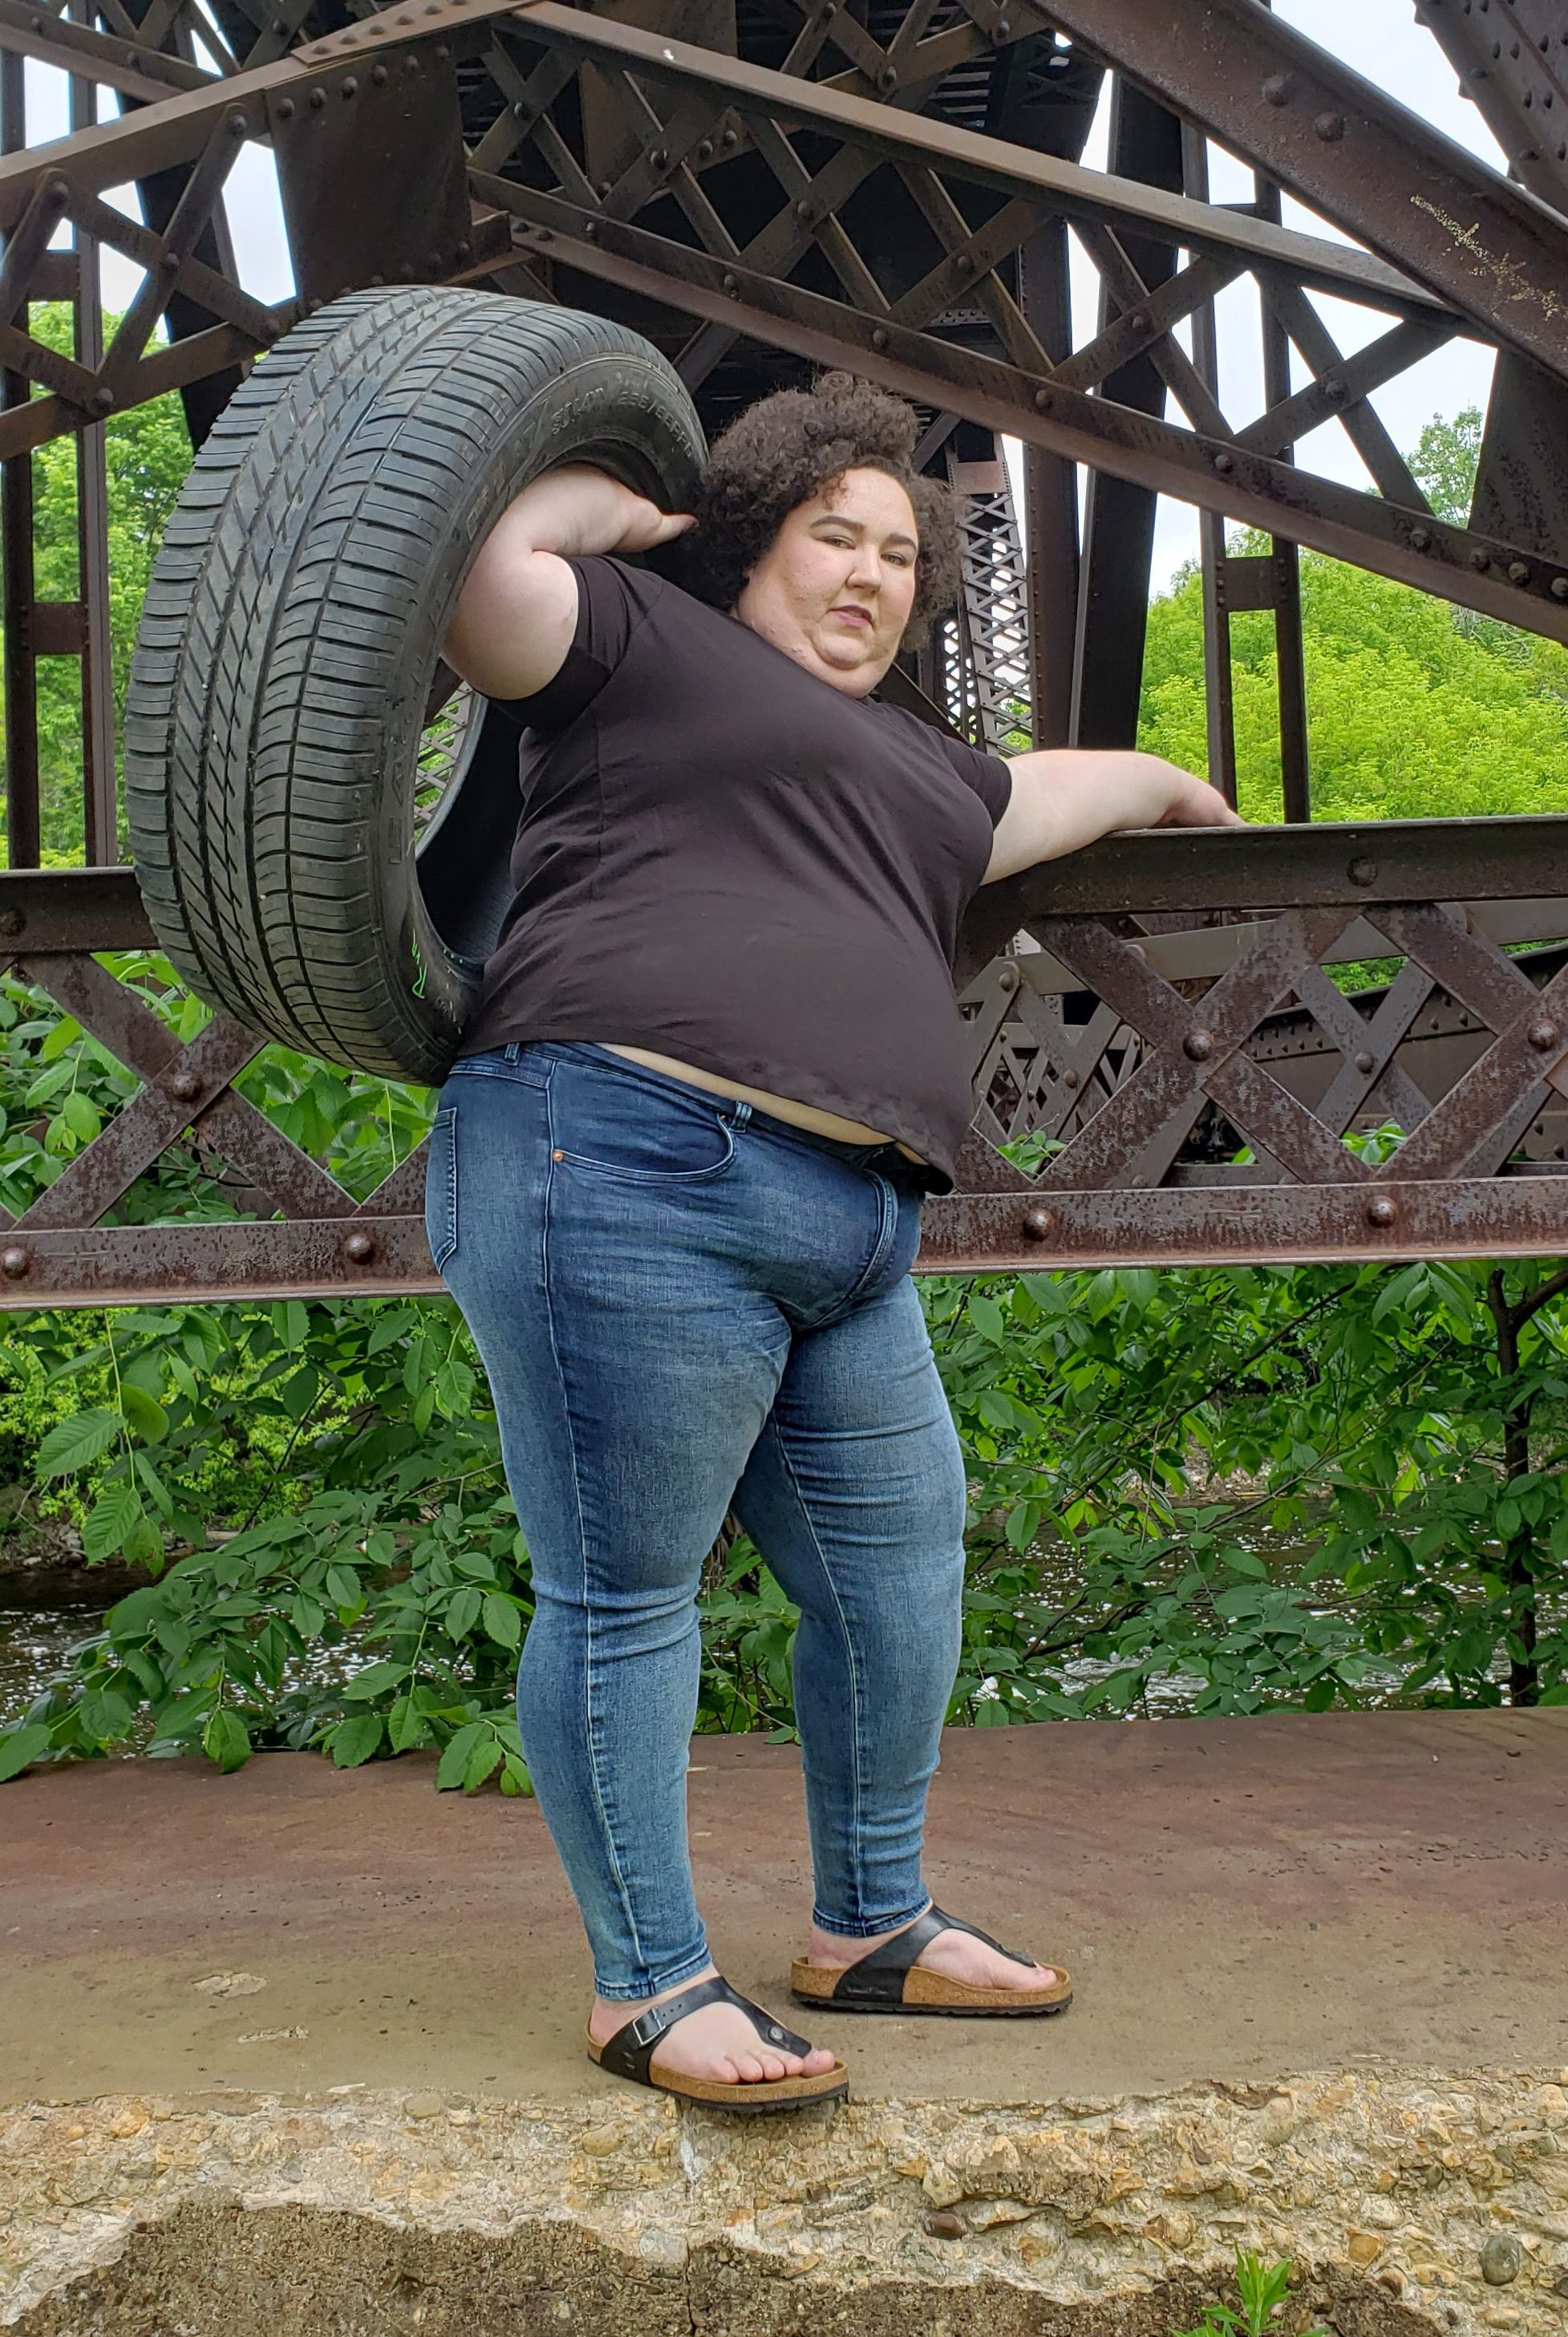 Chaya Milchtein standing on concrete ledge on a railroad area holding a truck tire in one hand and holding the metal ledge with the other wearing blue jeans and a black t shirt.